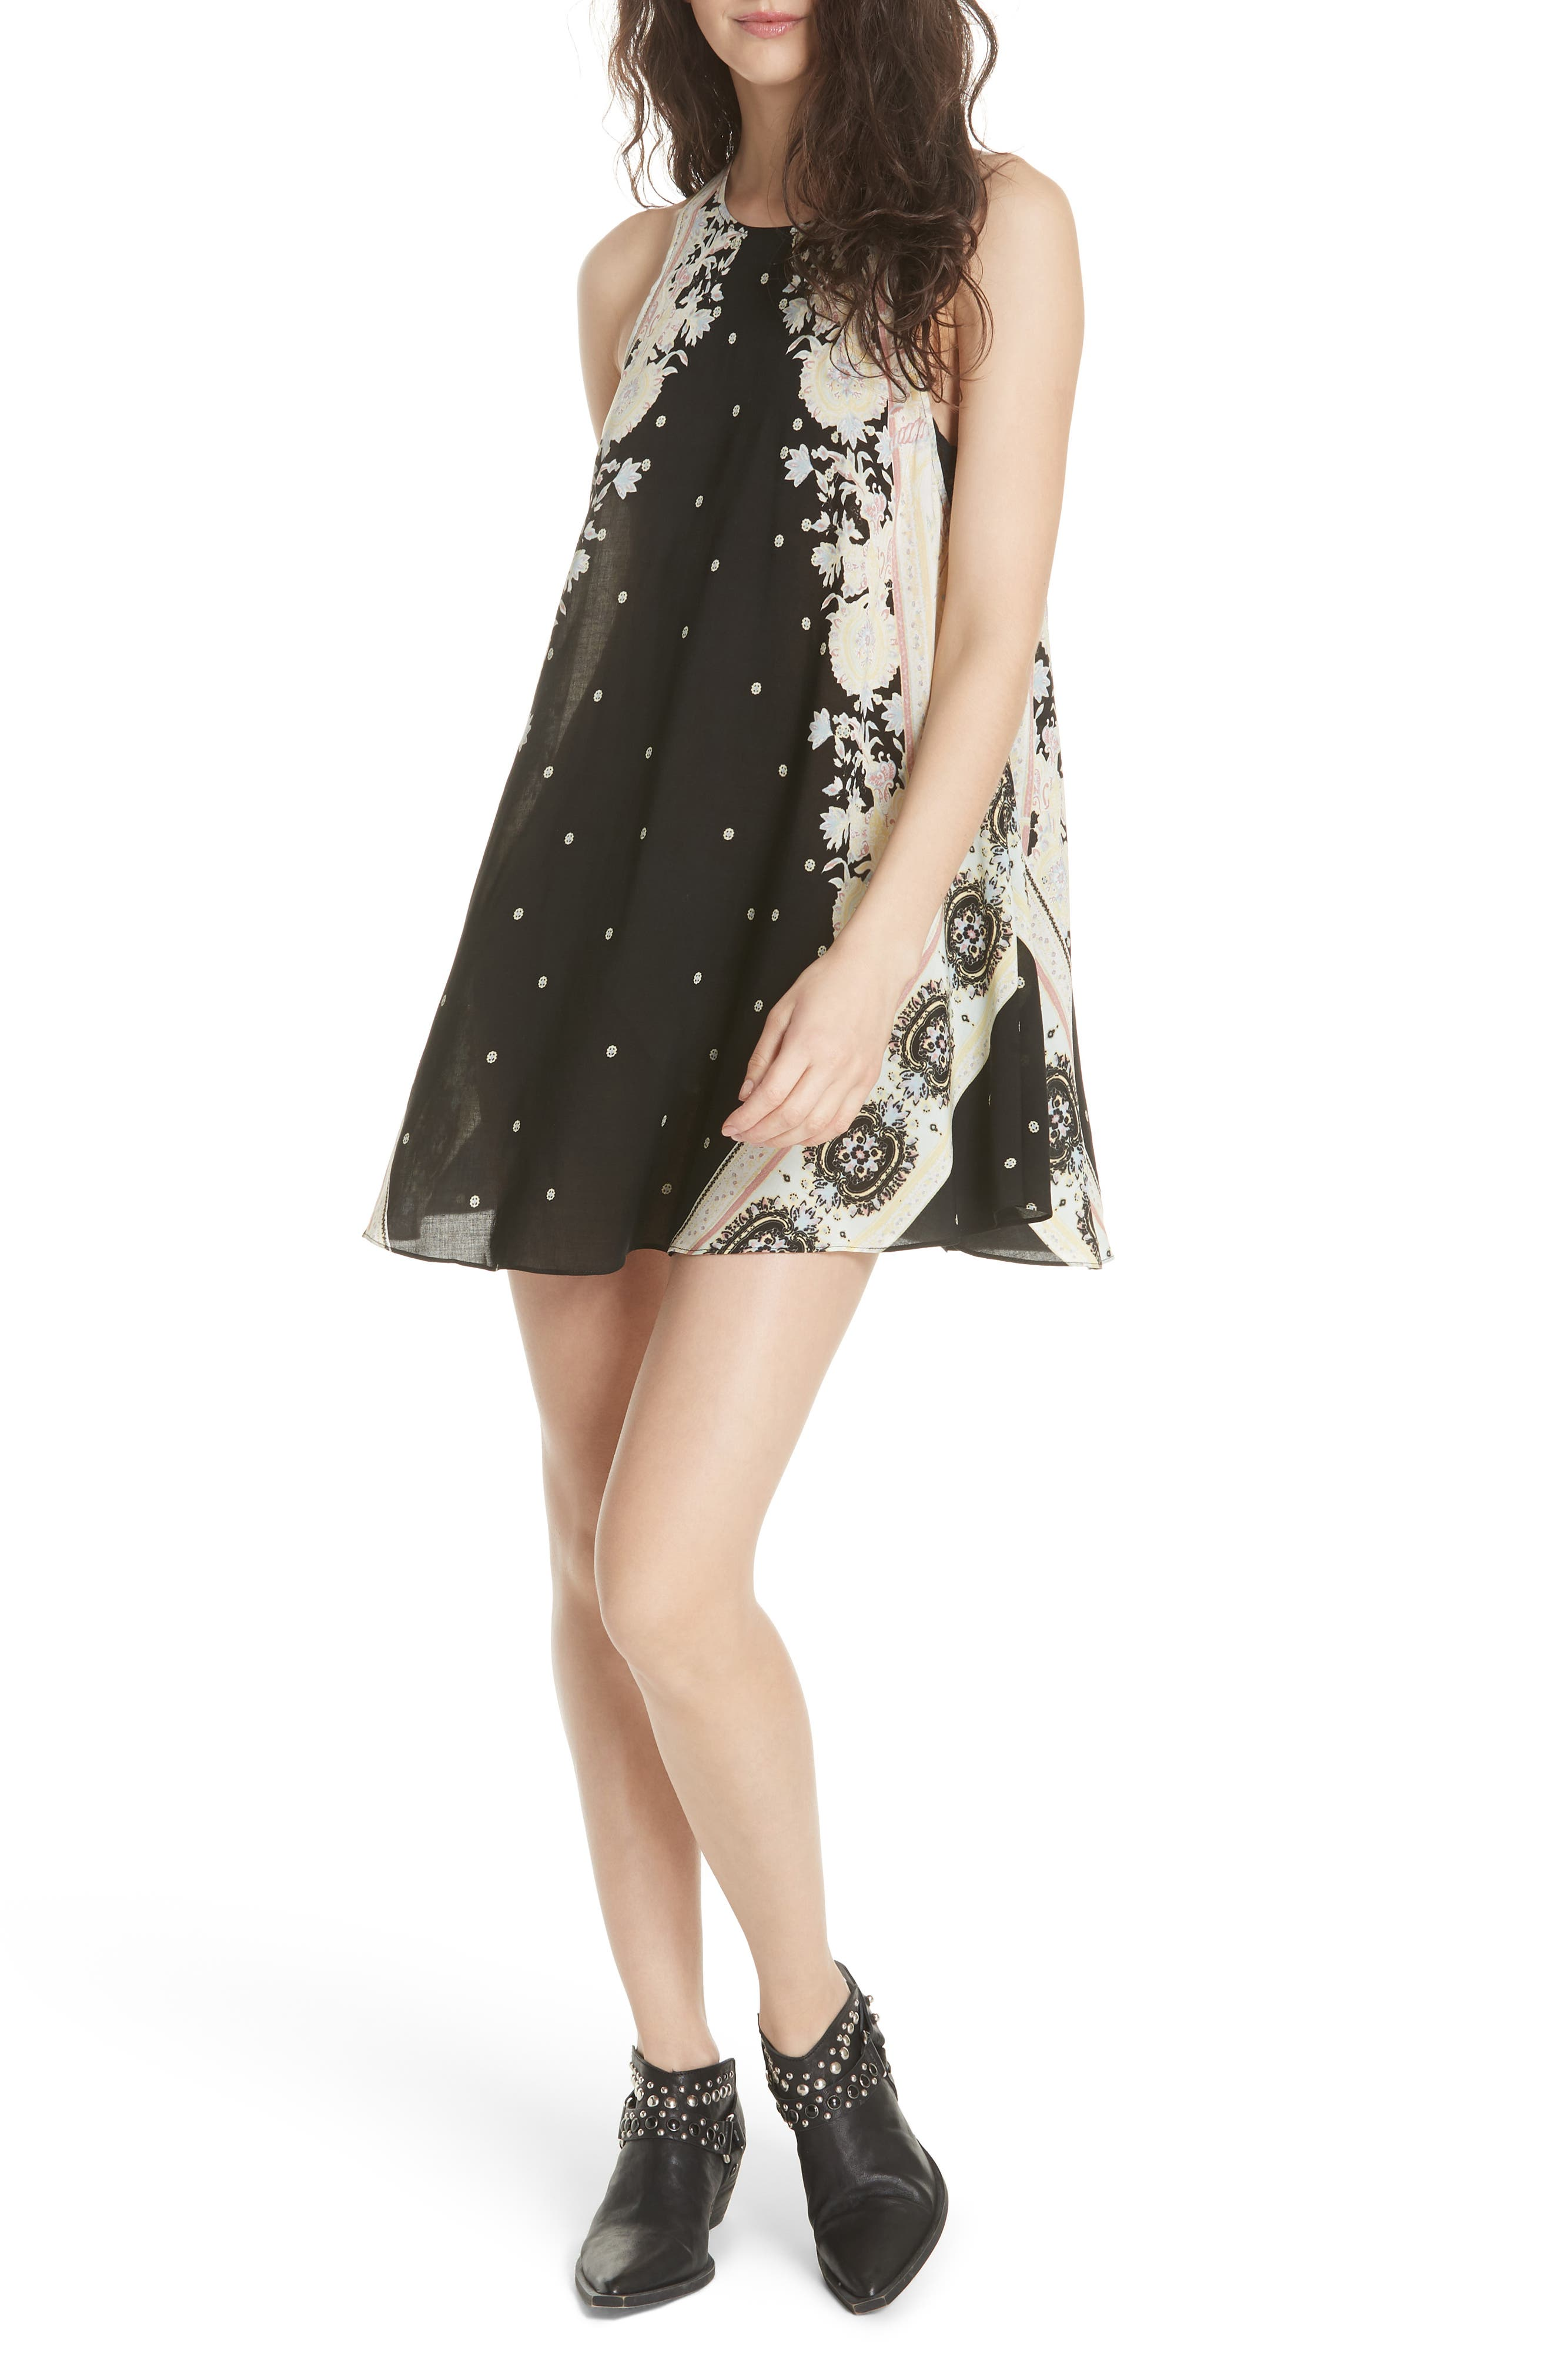 Darjeeling Print Minidress,                             Alternate thumbnail 6, color,                             BLACK COMBO